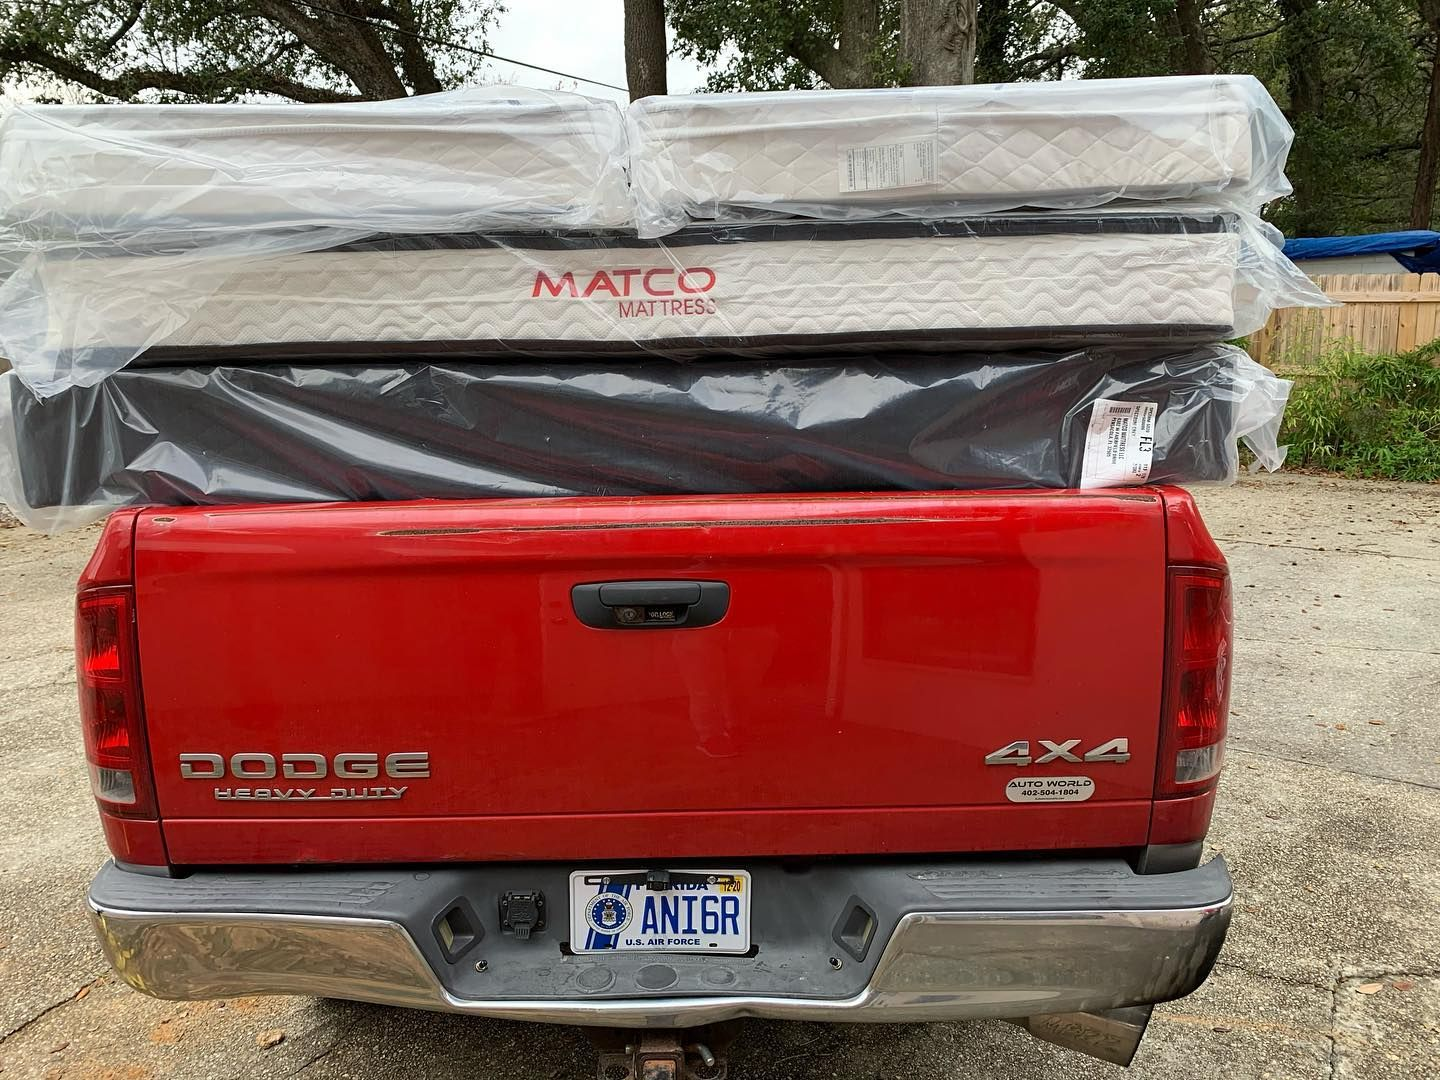 Mattresses In Stock Get Yours Today Pensacola Pensacolalocalbusiness In 2020 Mattress Foam Mattress Pensacola